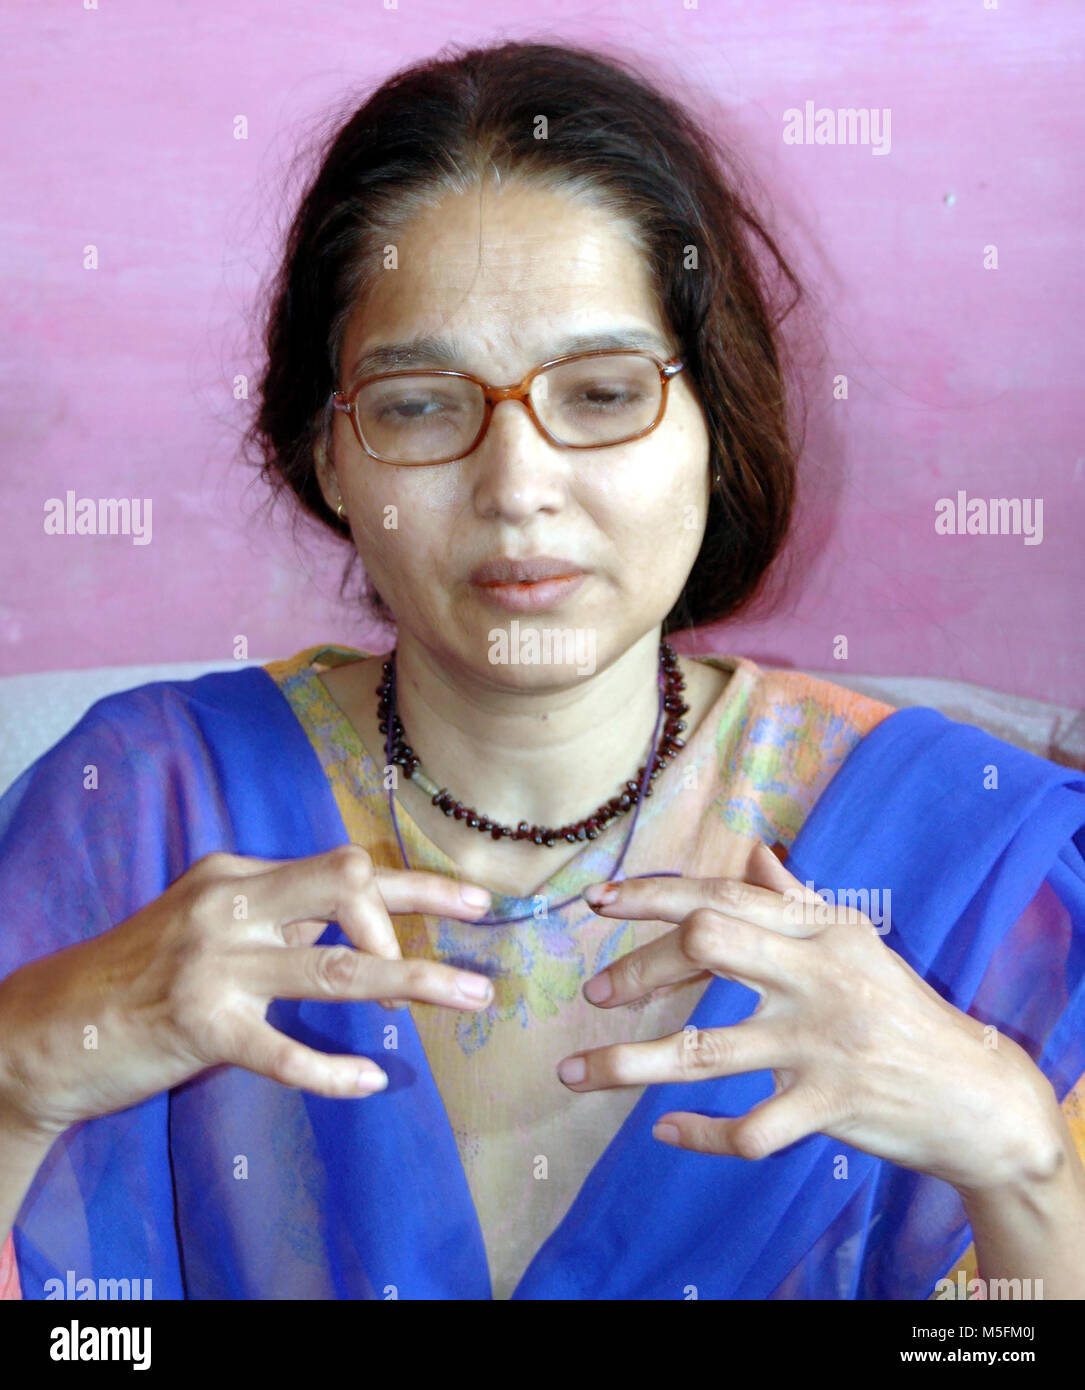 woman deformed fingers in bhopal disaster, madhya pradesh, India, Asia - Stock Image